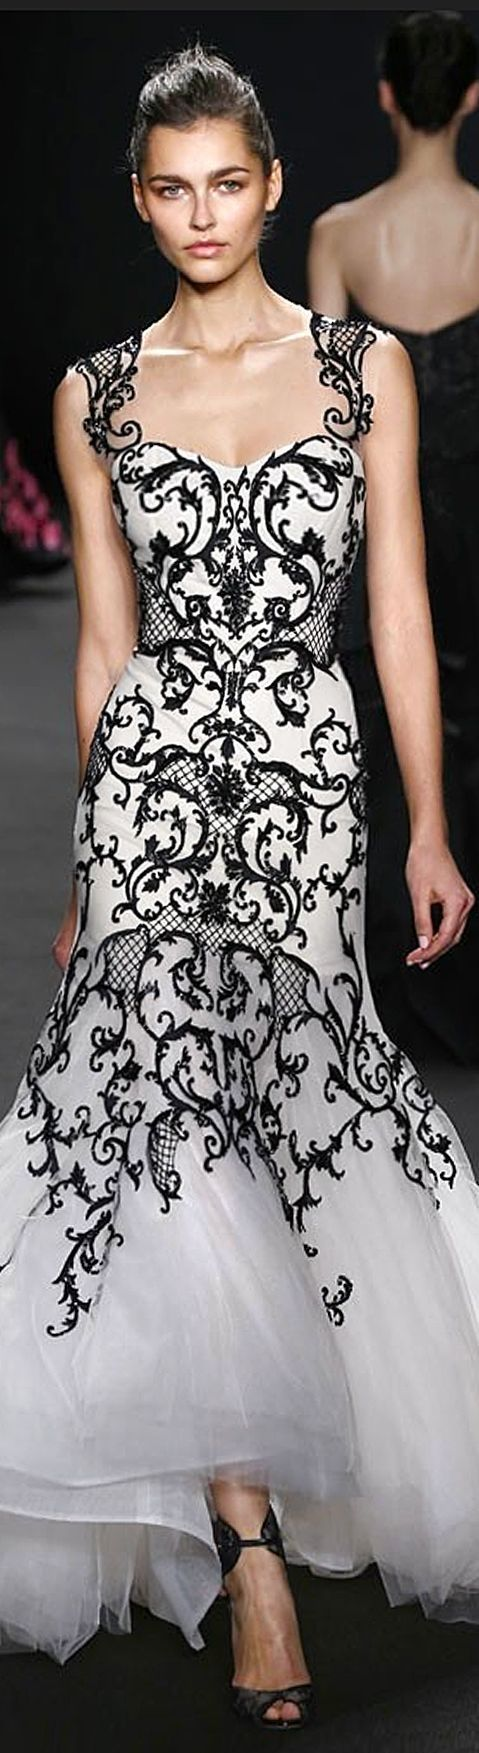 white & black | fashion, beautiful gowns, evening gowns